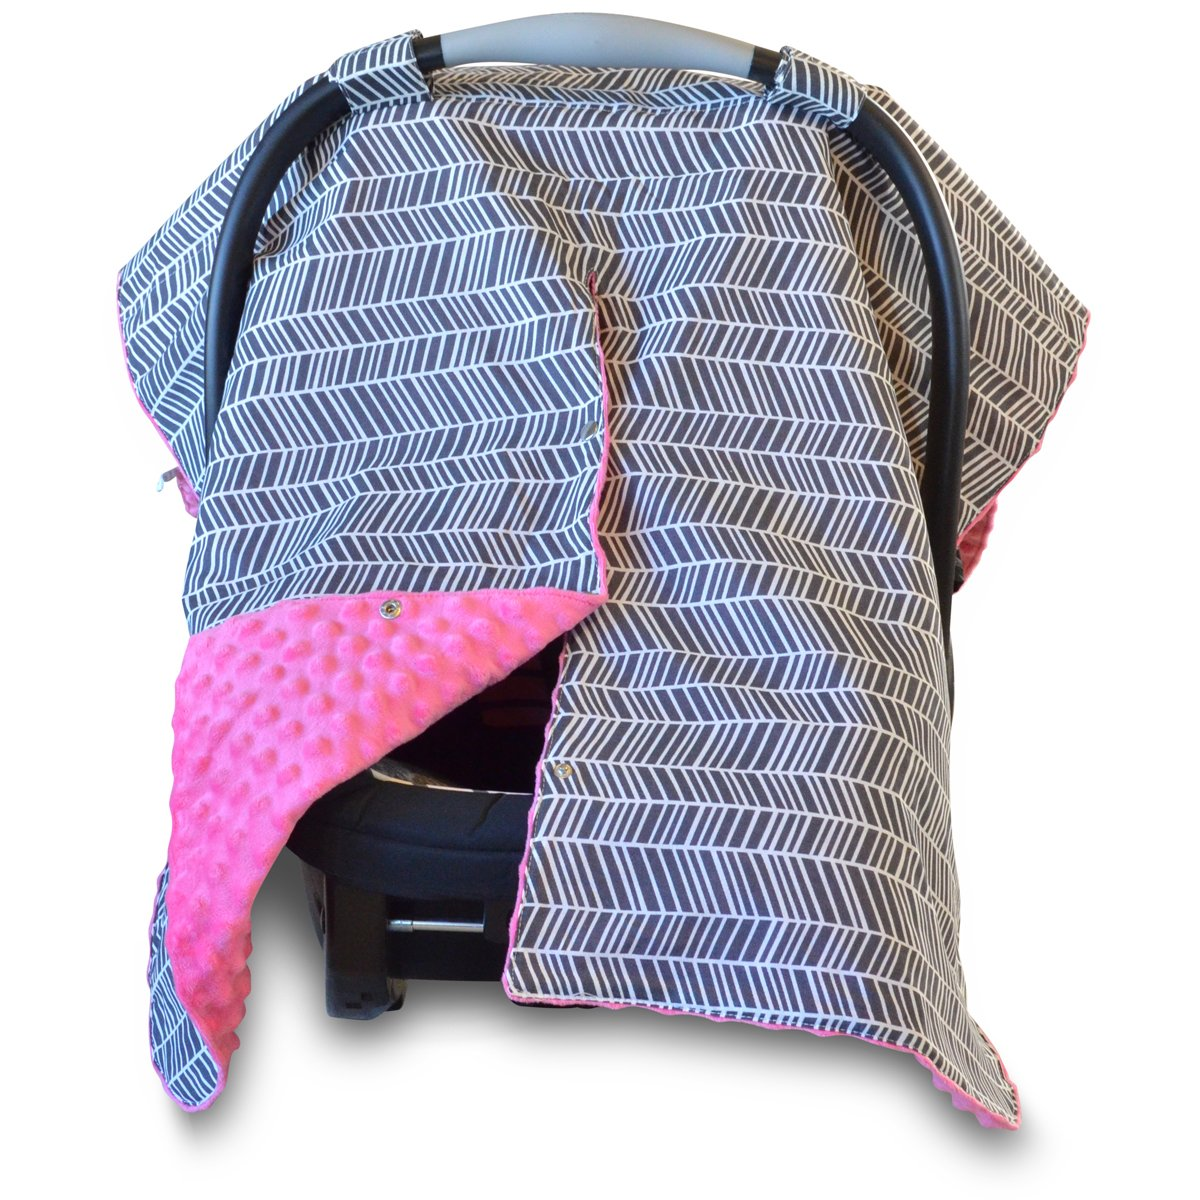 Kids N' Such 2 in 1 Car Seat Canopy Cover with Peekaboo Opening™ - Large Carseat Cover for Infant Carseats - Best for Baby Girls - Use as a Nursing Cover - Herringbone with Hot Pink Dot Minky